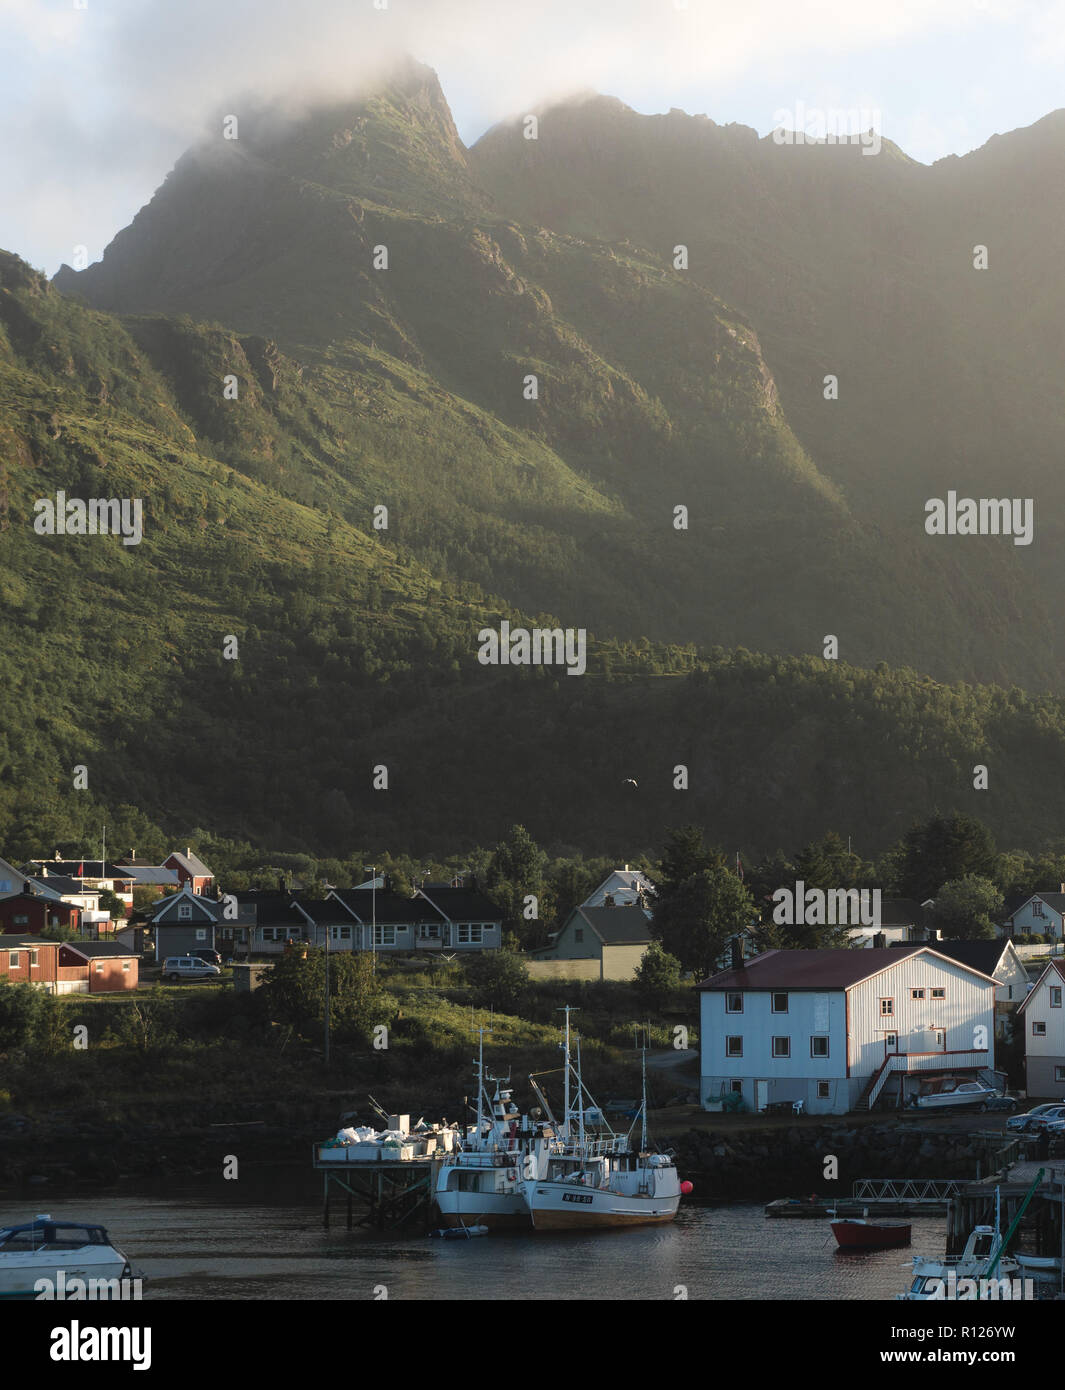 Beautiful landscape of picturesque harbor with fishing boat and traditional Norwegian rorbus in Stamsund, Lofoten islands, Norway Stock Photo